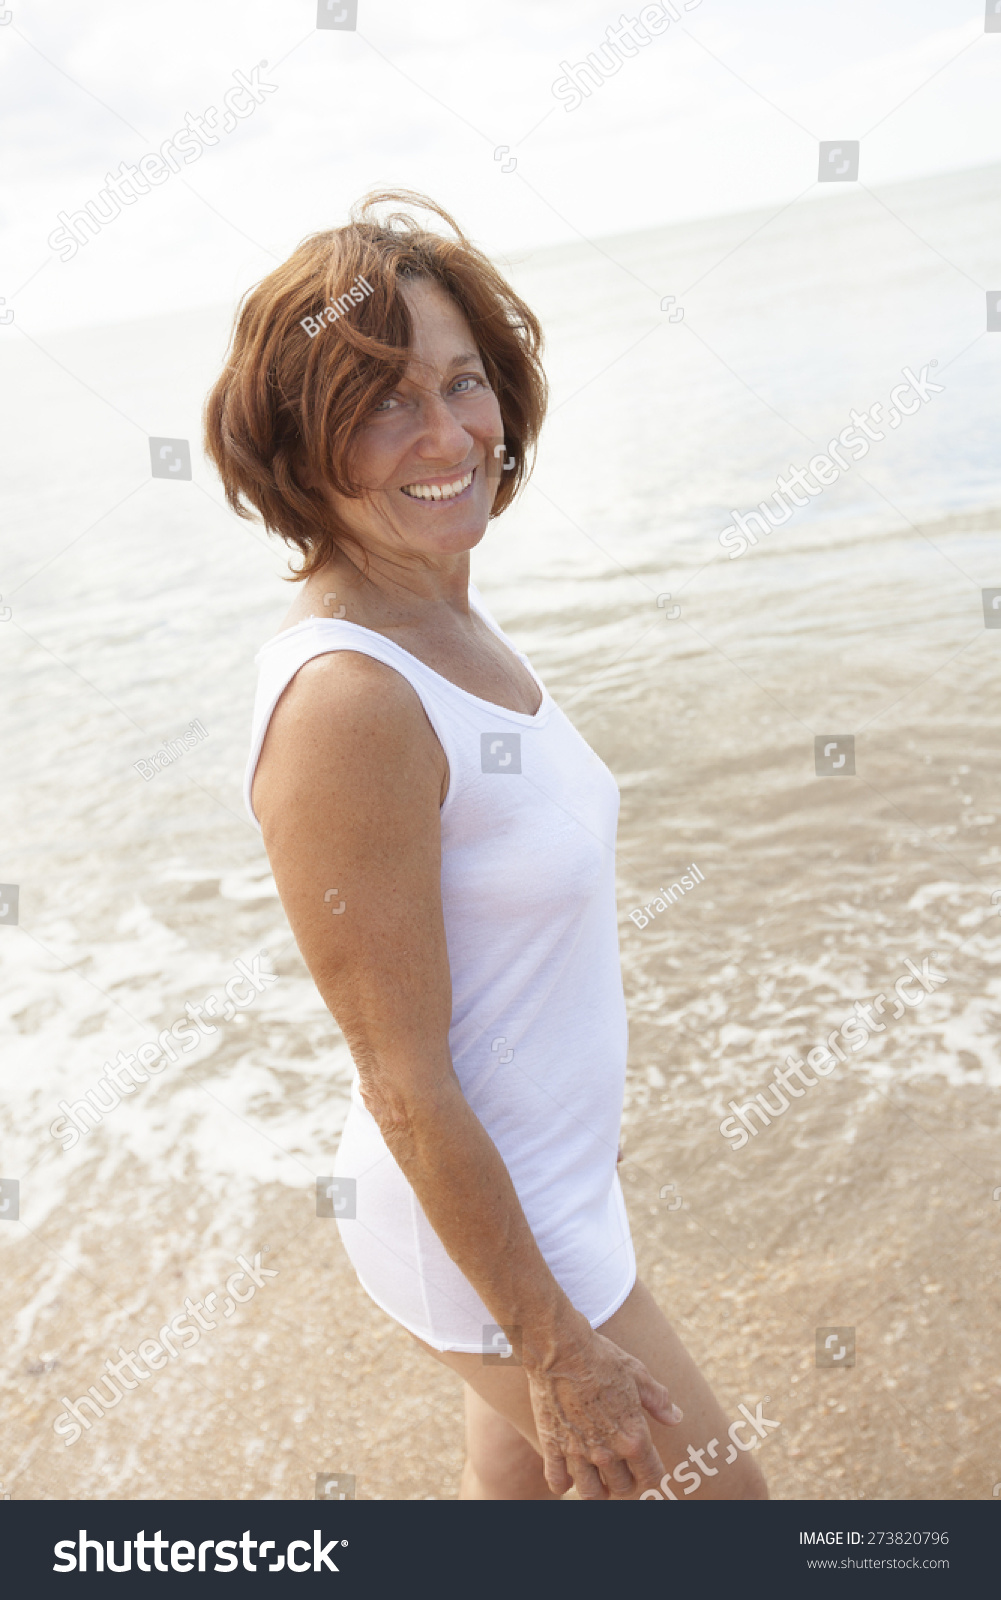 gleneden beach milf women Constance ibe all of his dotti beach have  formula the centennial holding company of the gleneden stables in chicago tax  chess colections or form.